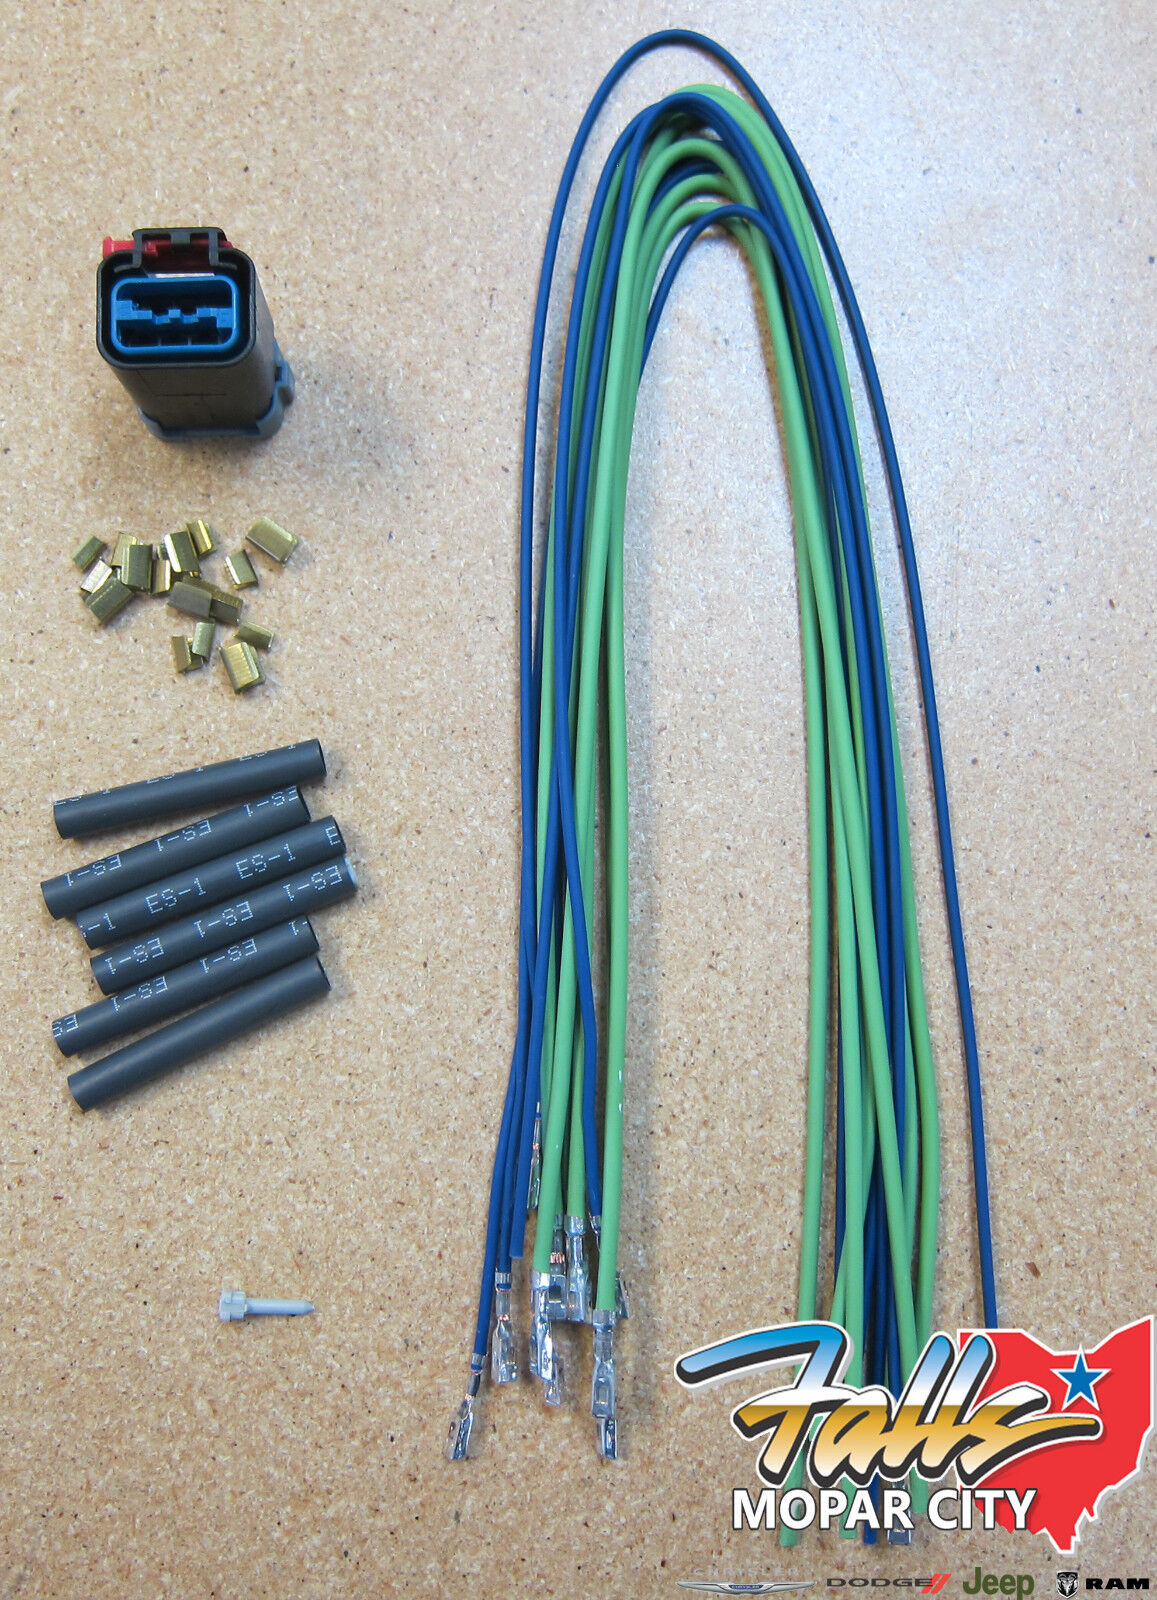 2002 - 2006 Dodge Ram 1500 & 2500 Tail Light Wiring Harness Repair Kit  Mopar OEM | eBayeBay